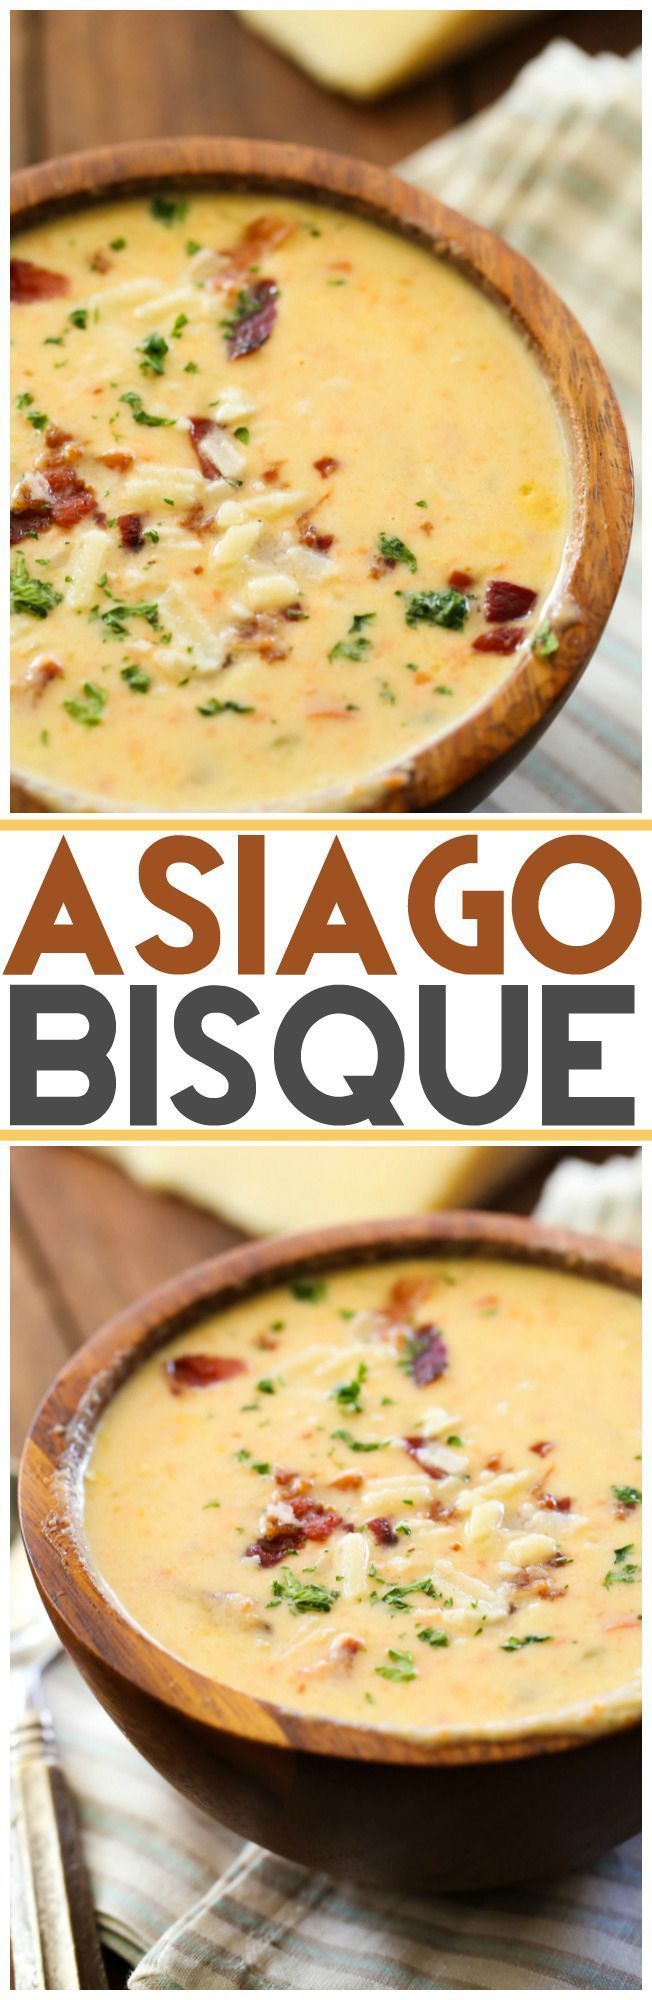 Asiago Bisque... This soup is unbelievably delicious! It is so flavorful…